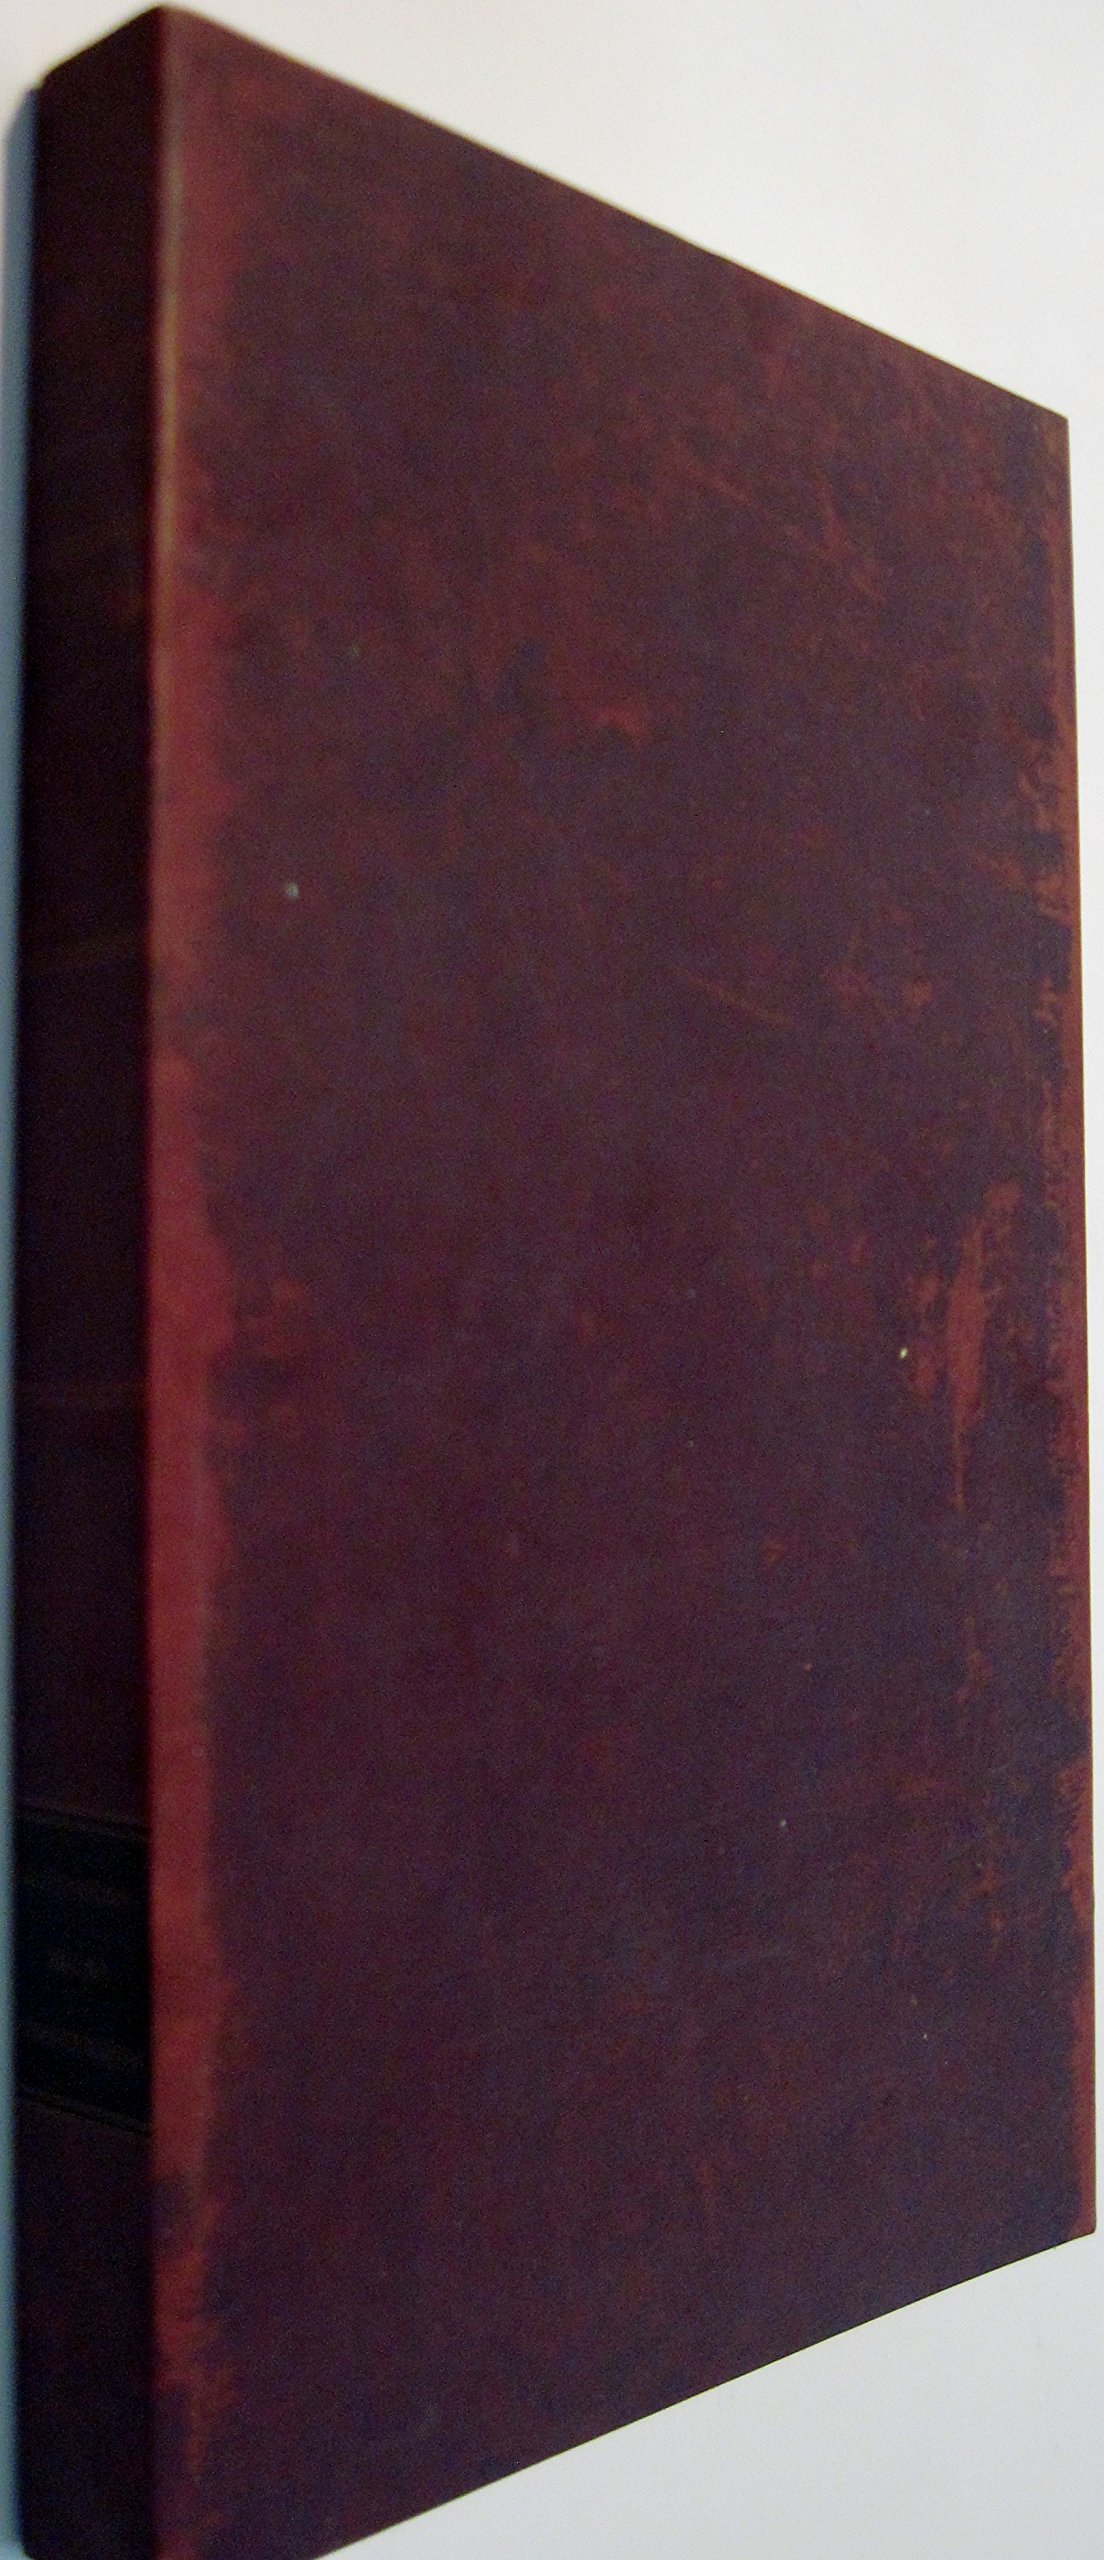 The Pharmacopoeia of the United States of America: Facsimile of the First Edition (1820) pdf